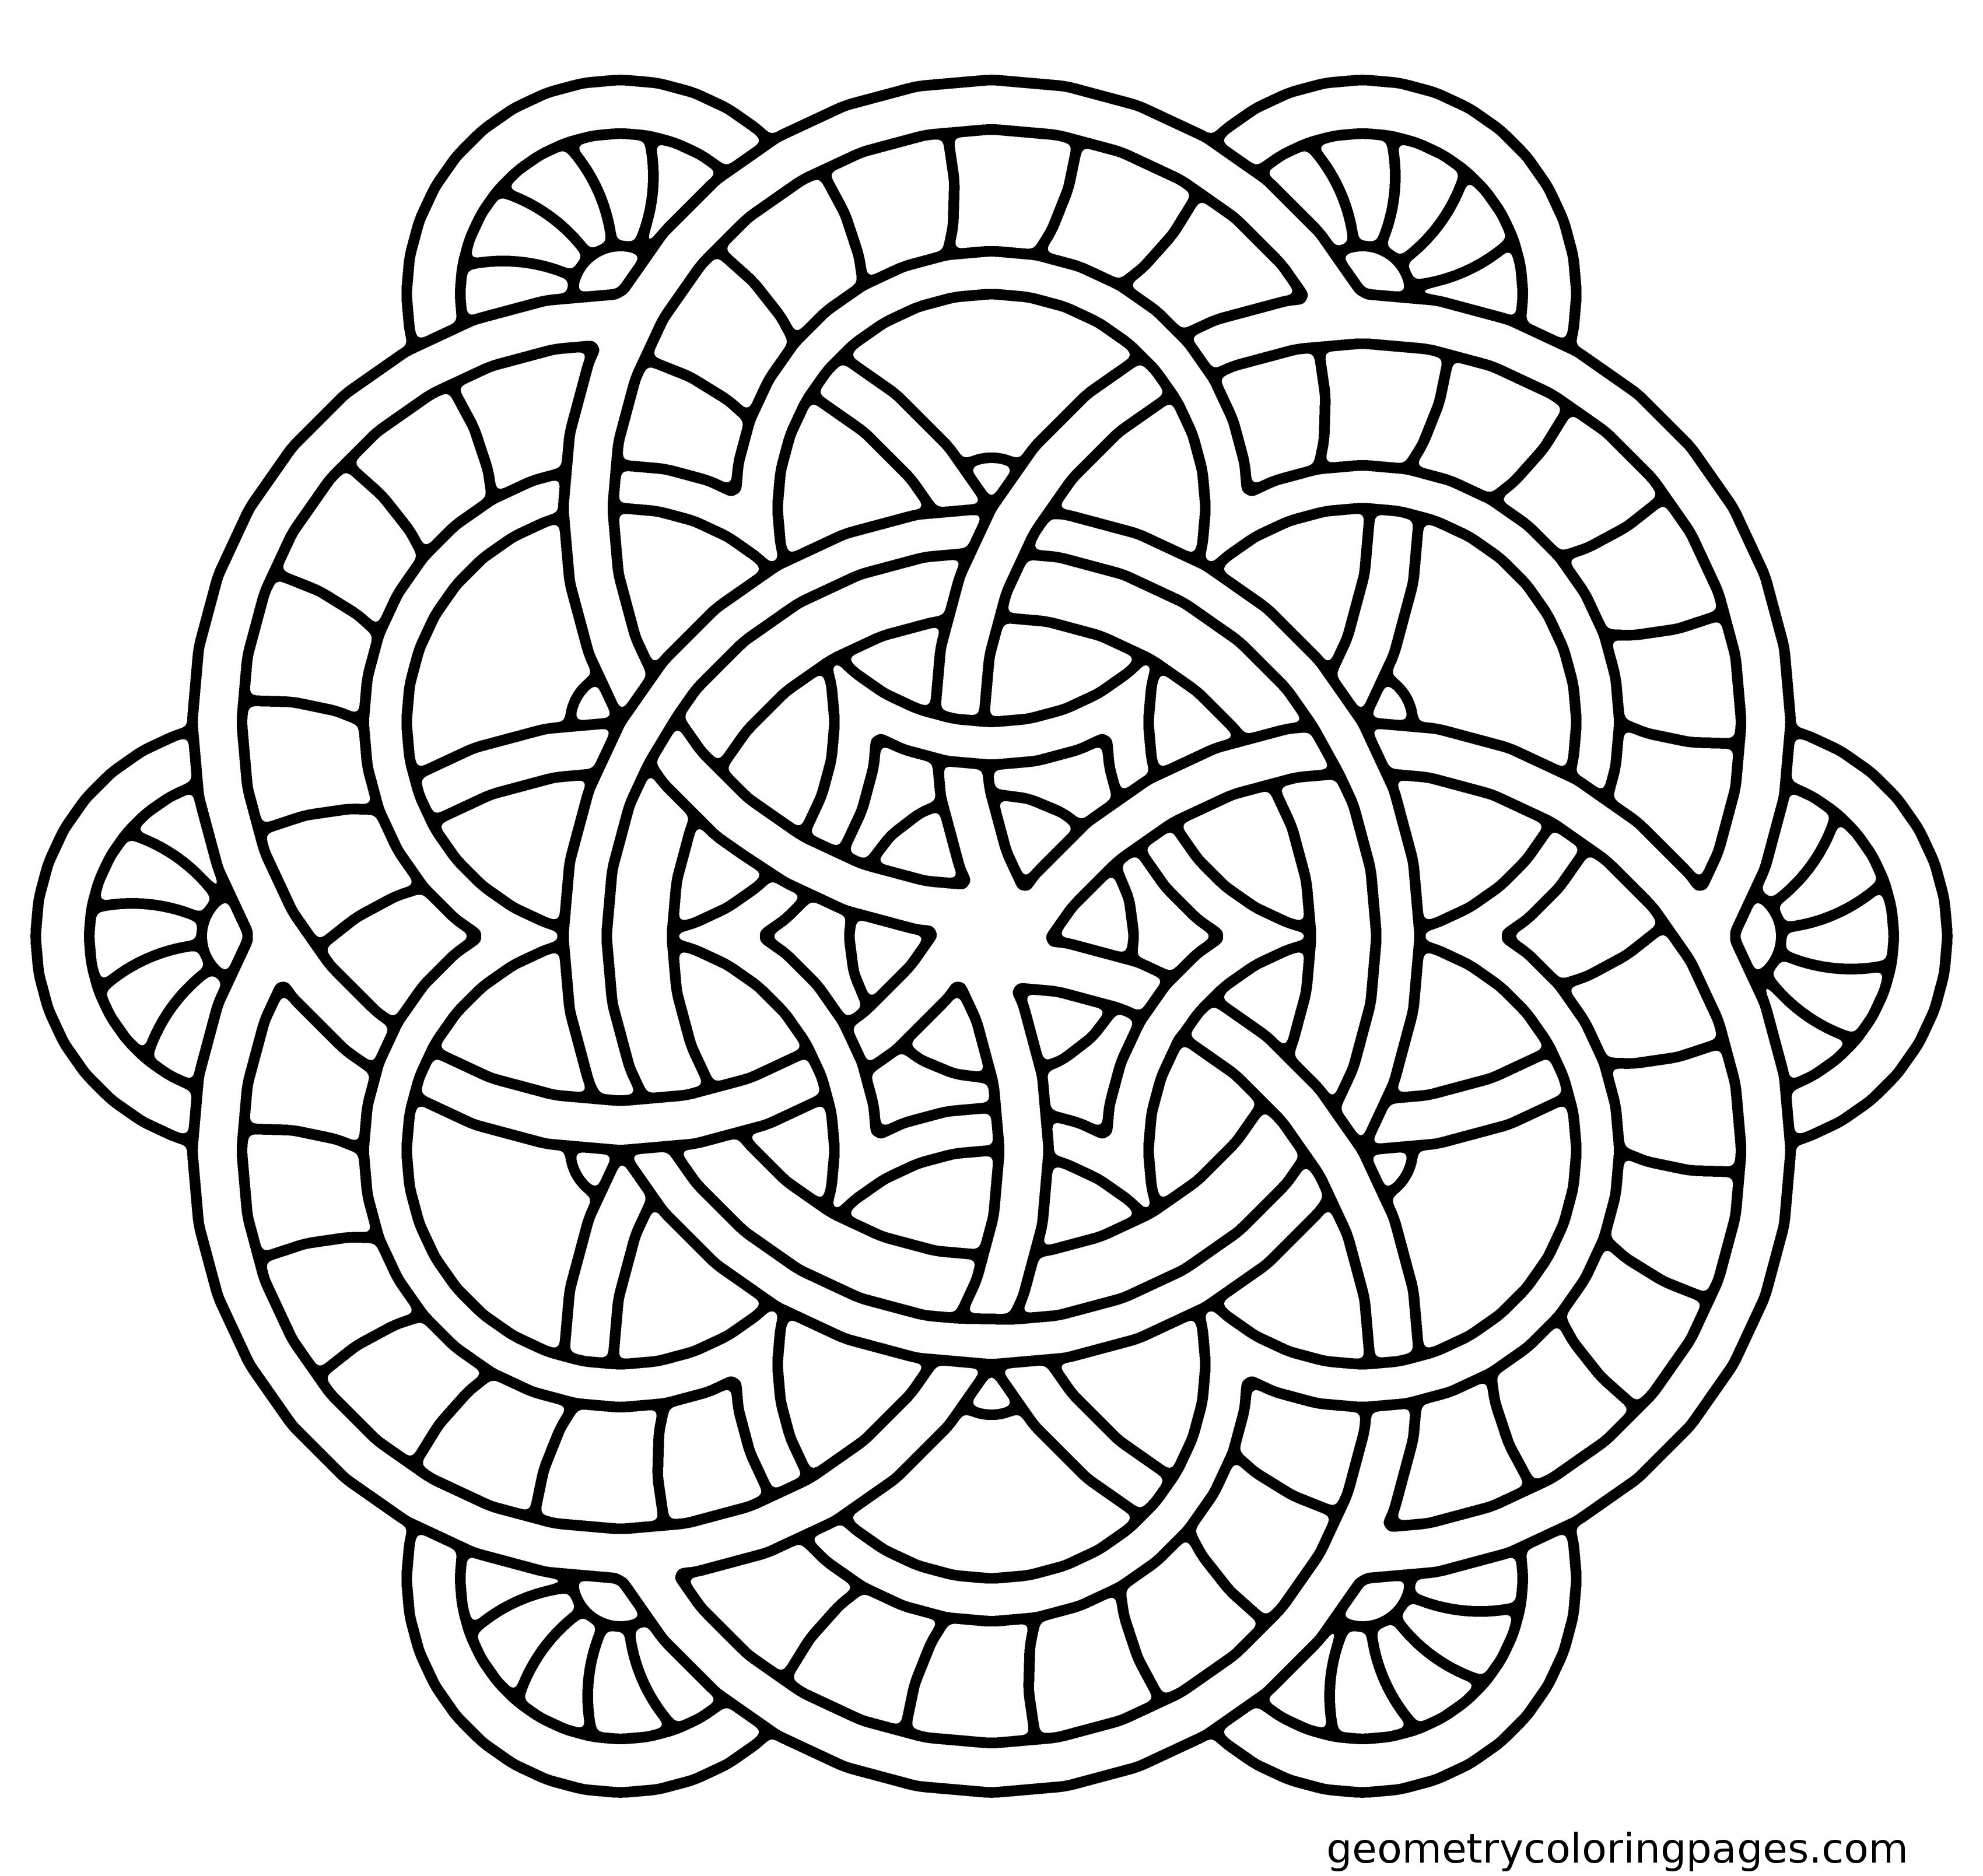 Coloring Ideas : Mandala Coloring Pages For Adults Free Printable X - Mandala Coloring Free Printable